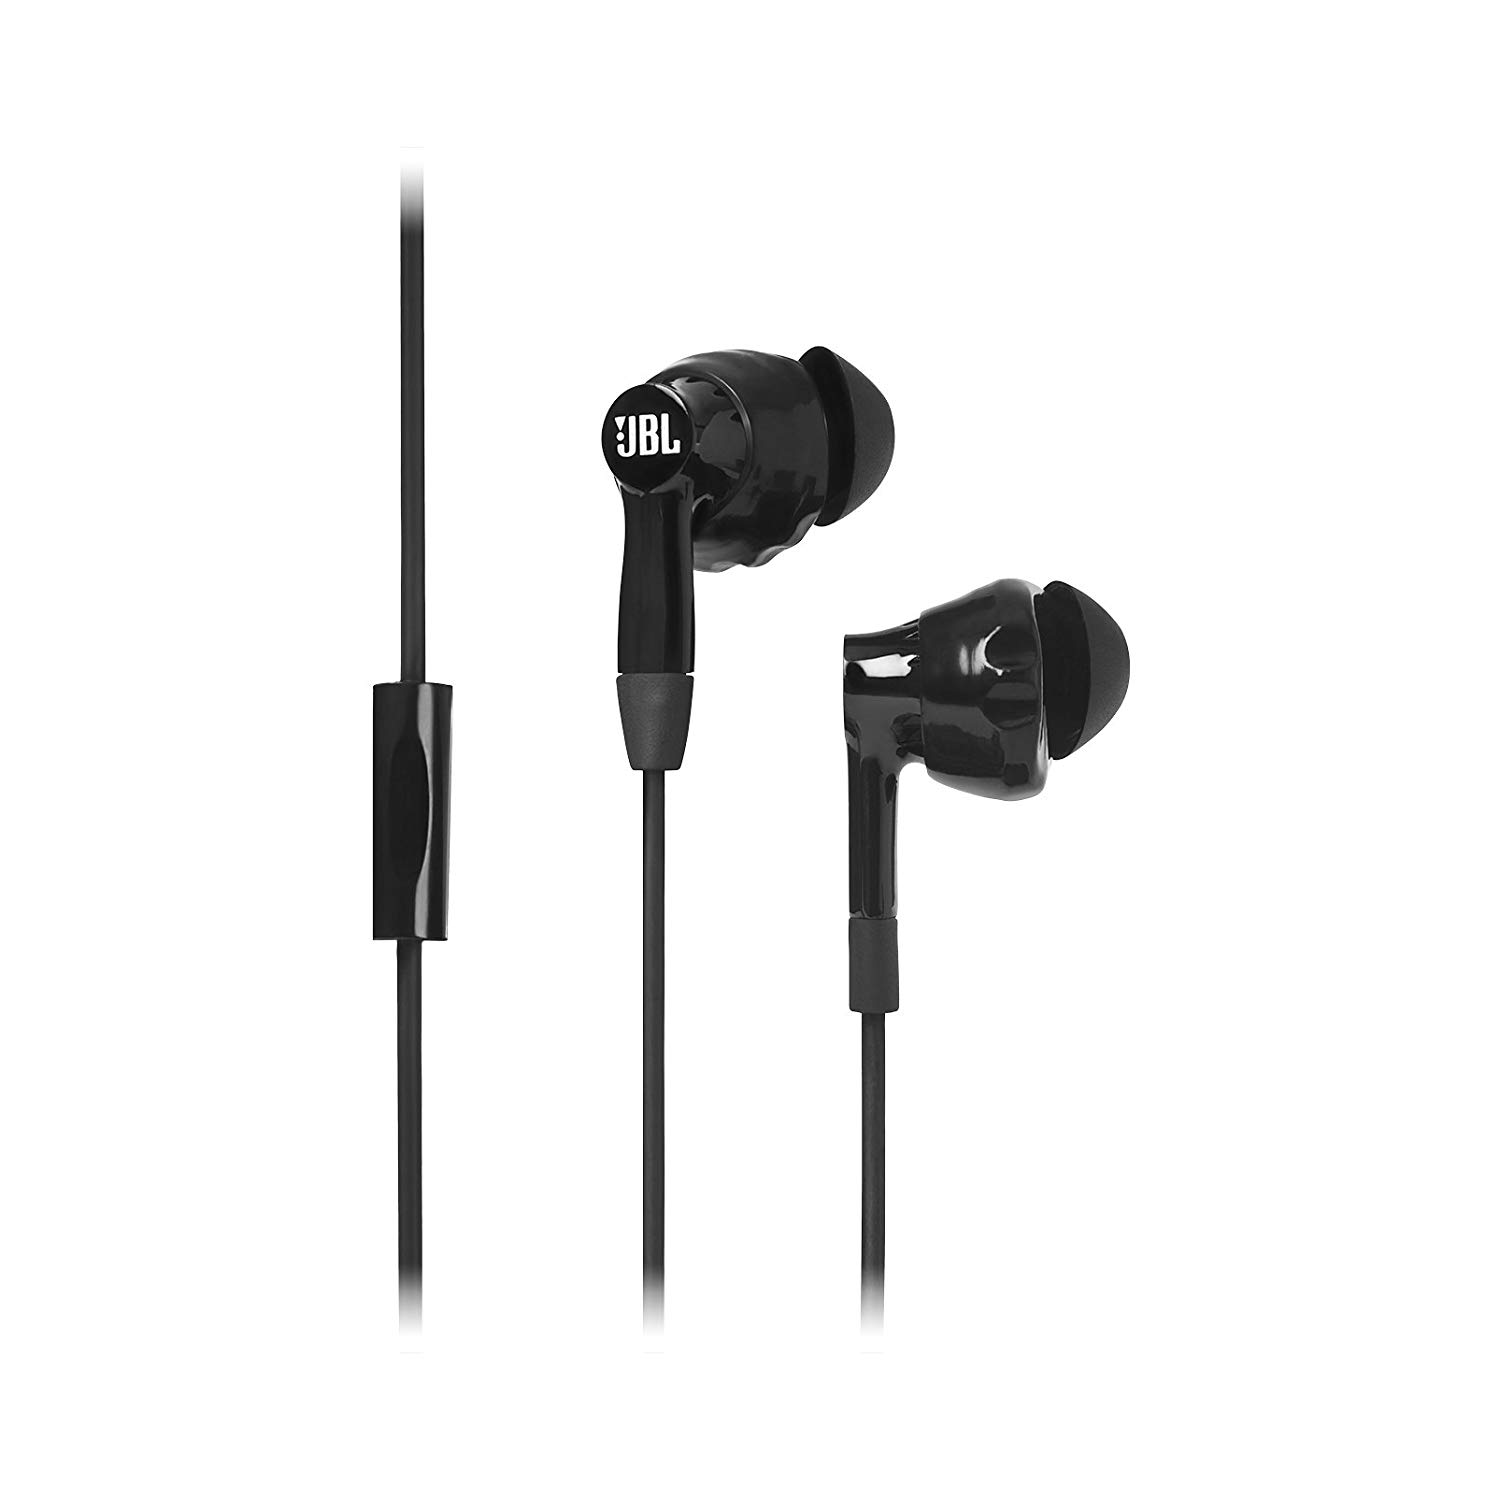 Image for JBL Inspire 300 In-the-ear, sport earphones feature TwistLock™ Technology from Circuit City